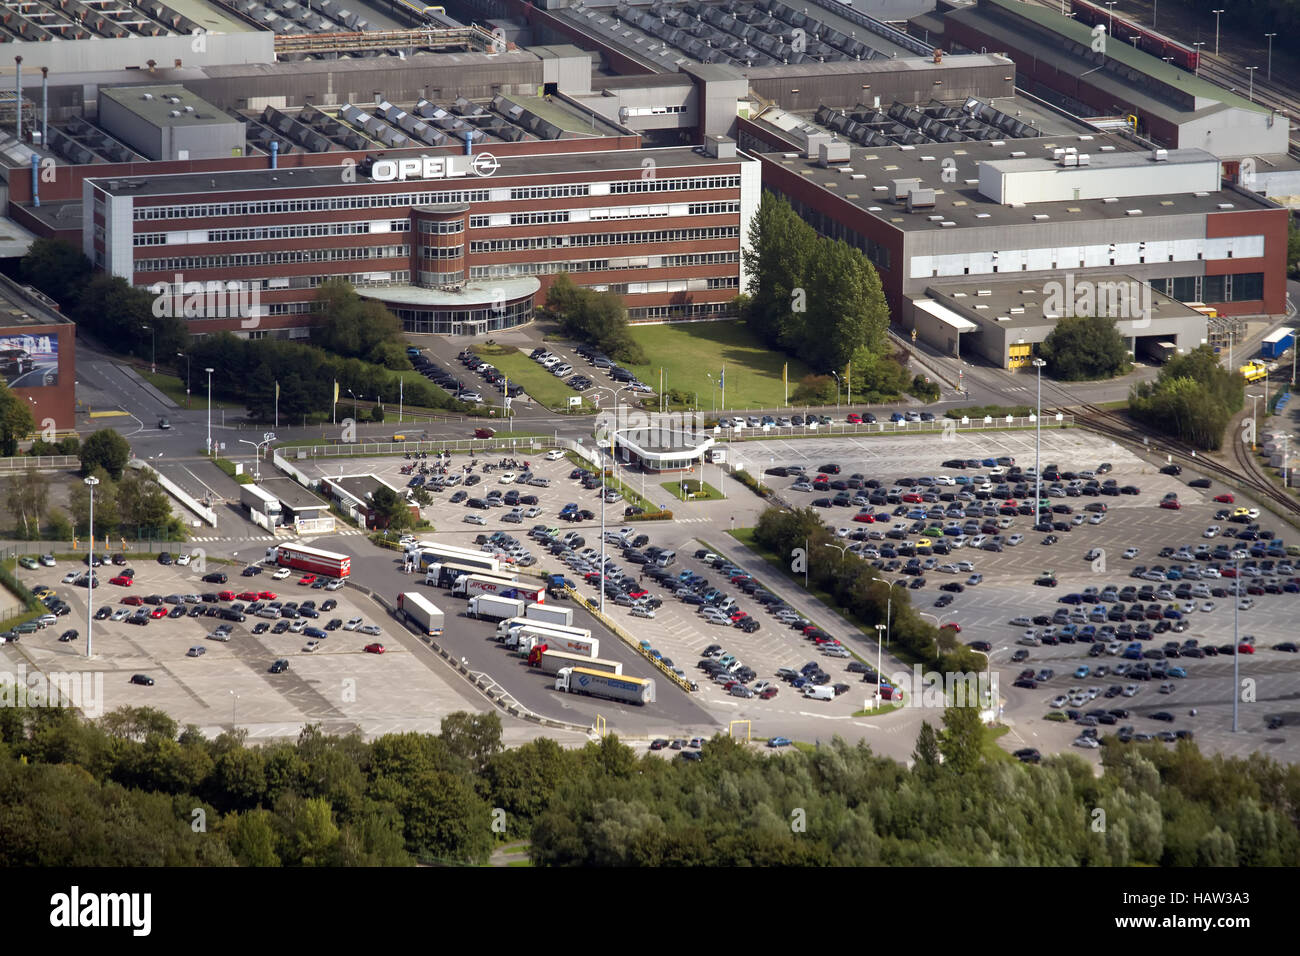 car manufacturers / opel factory - Stock Image